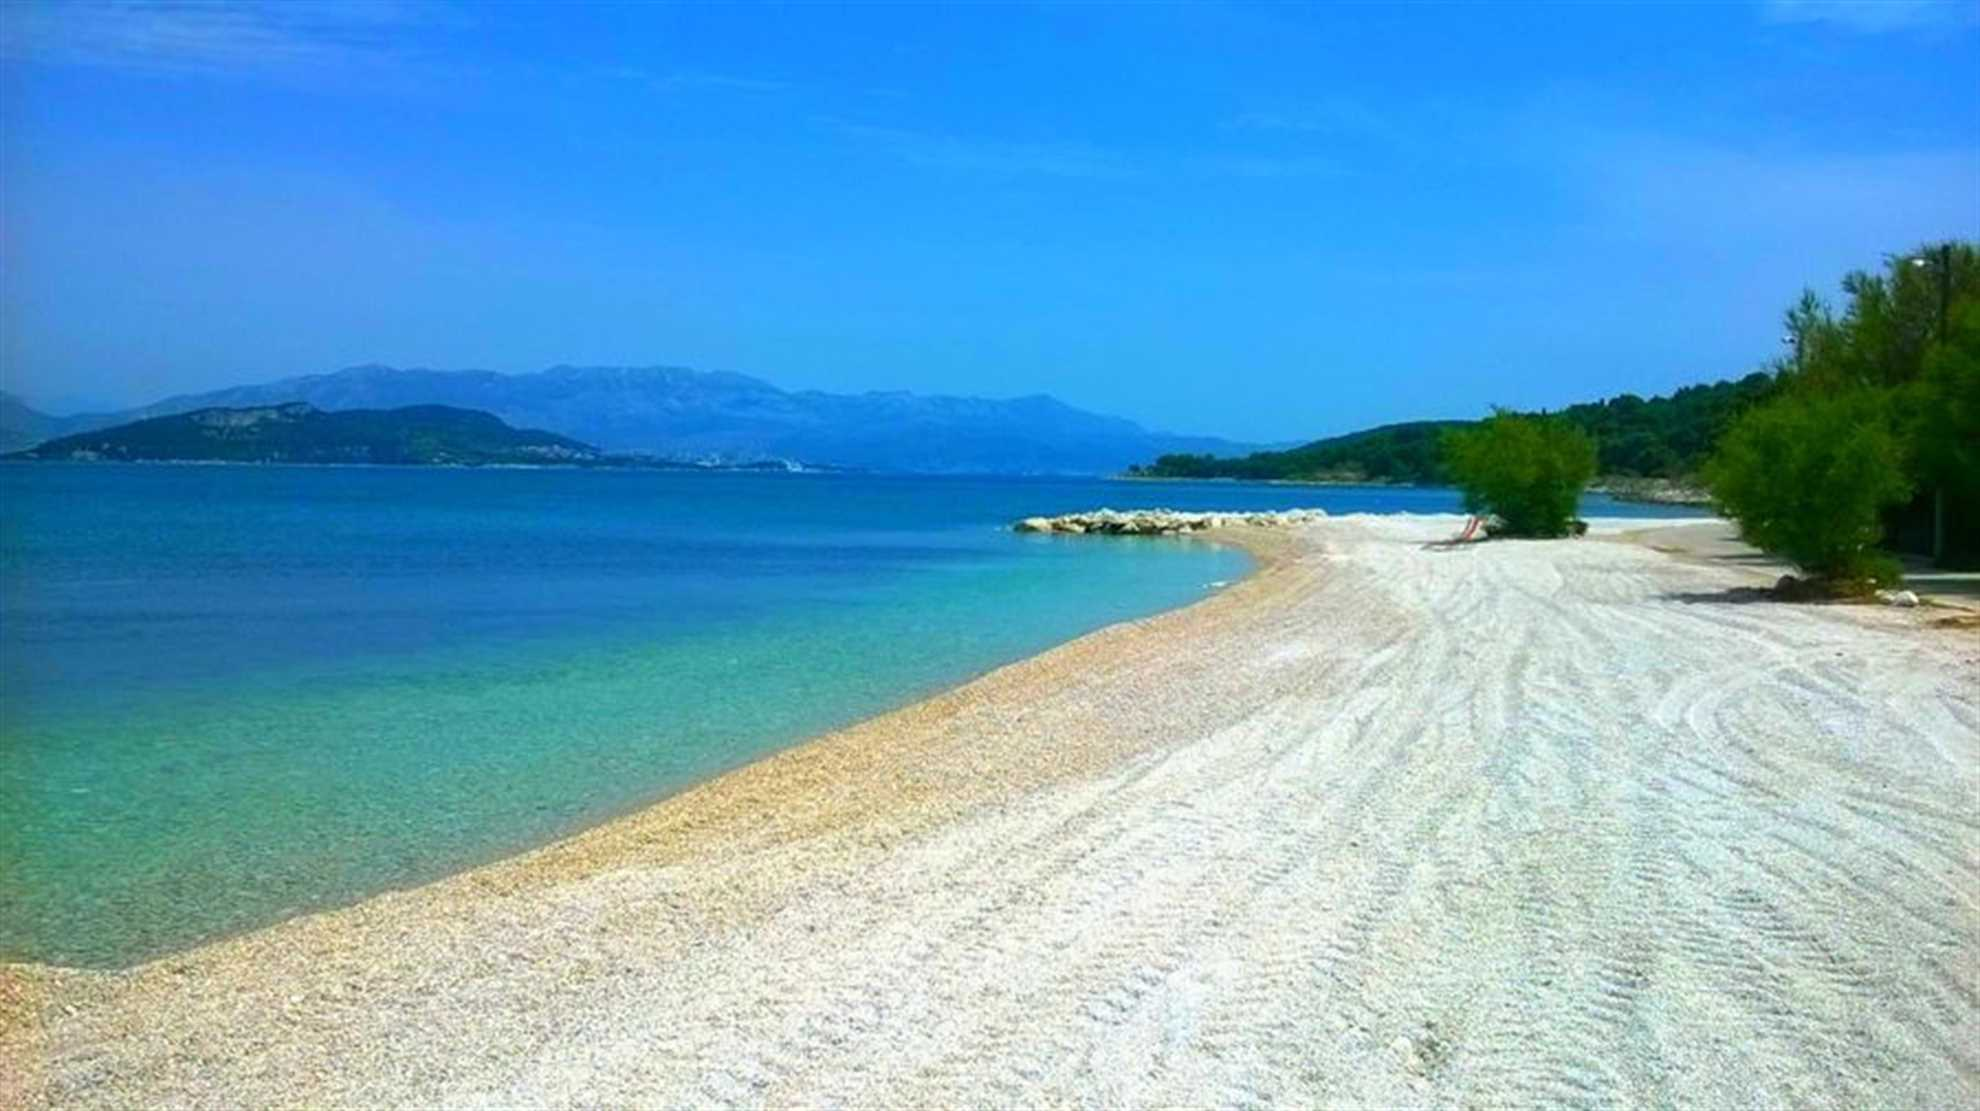 Beach on the island of Ciovo in Middle Dalmatia